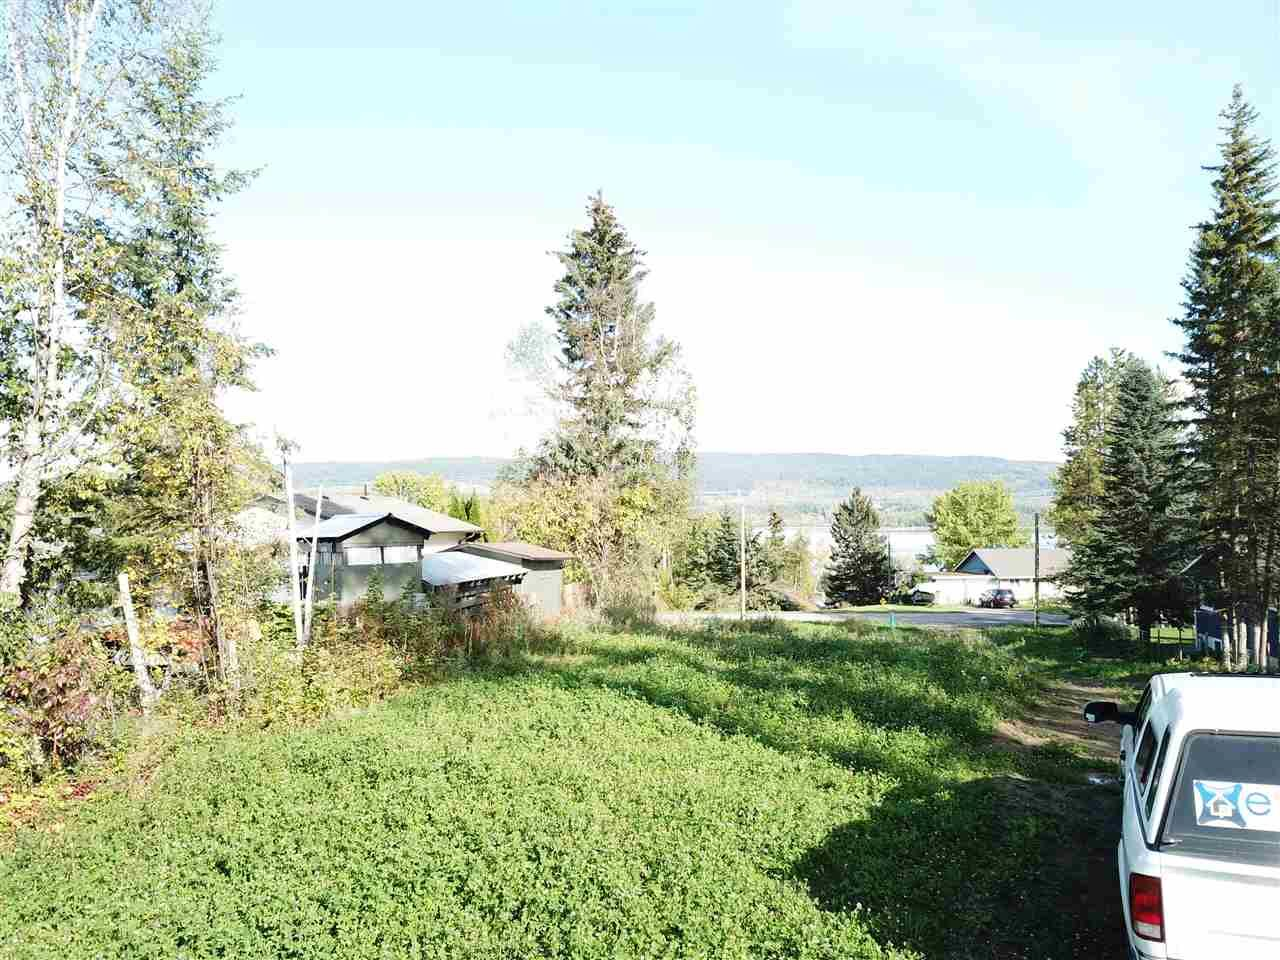 Main Photo: 1715 MARBLE Street in Quesnel: Red Bluff/Dragon Lake Land for sale (Quesnel (Zone 28))  : MLS®# R2542252